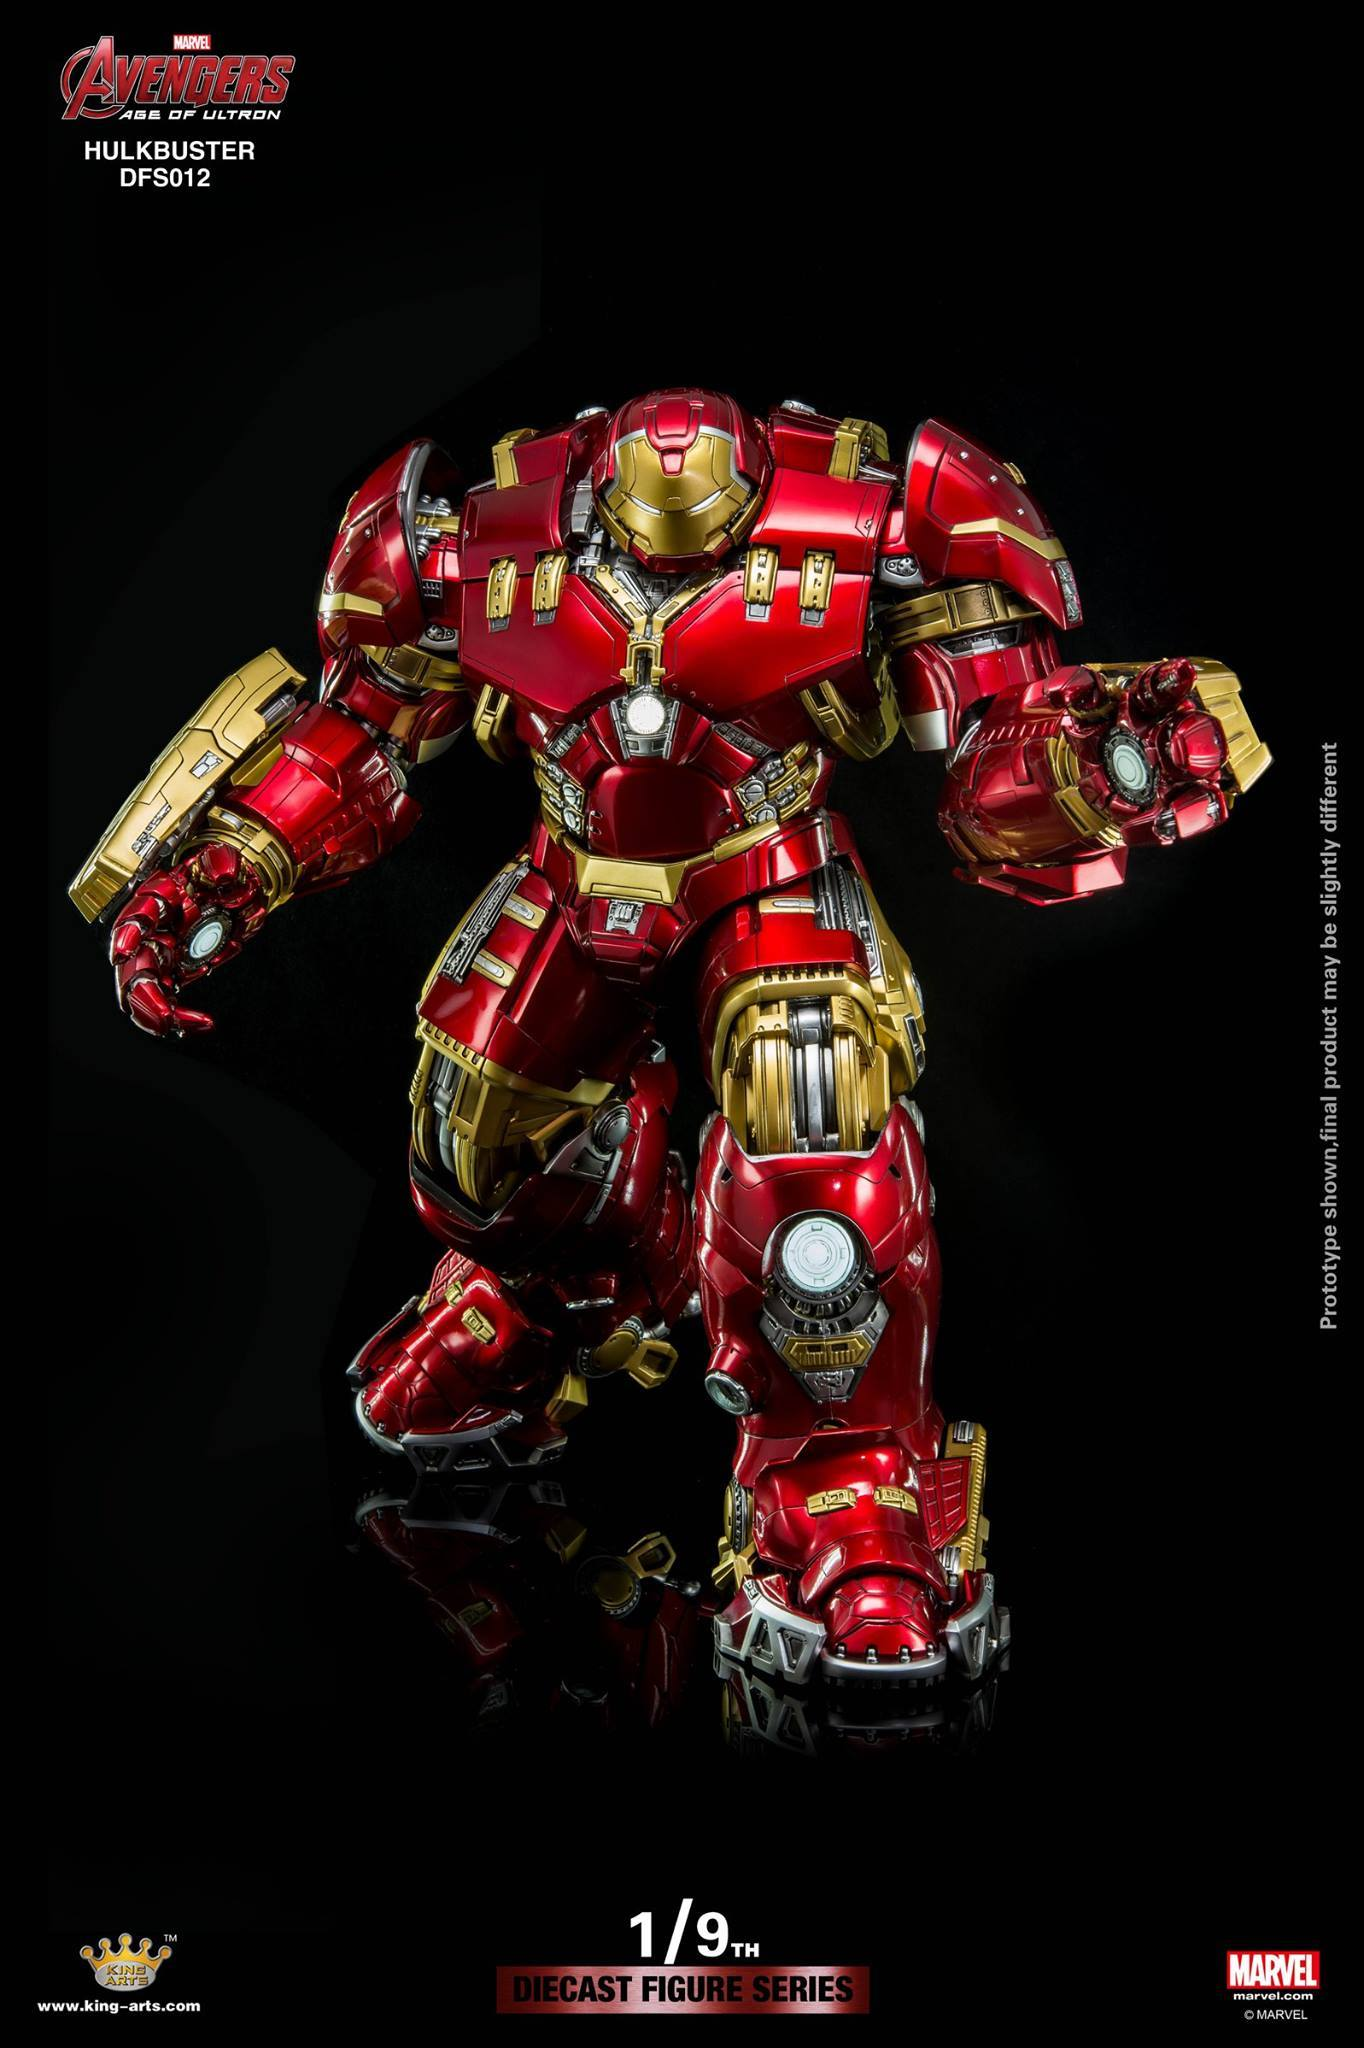 Hot Sale 2018 - 1/9 Avengers Diecast Figure Action Hulkbuster